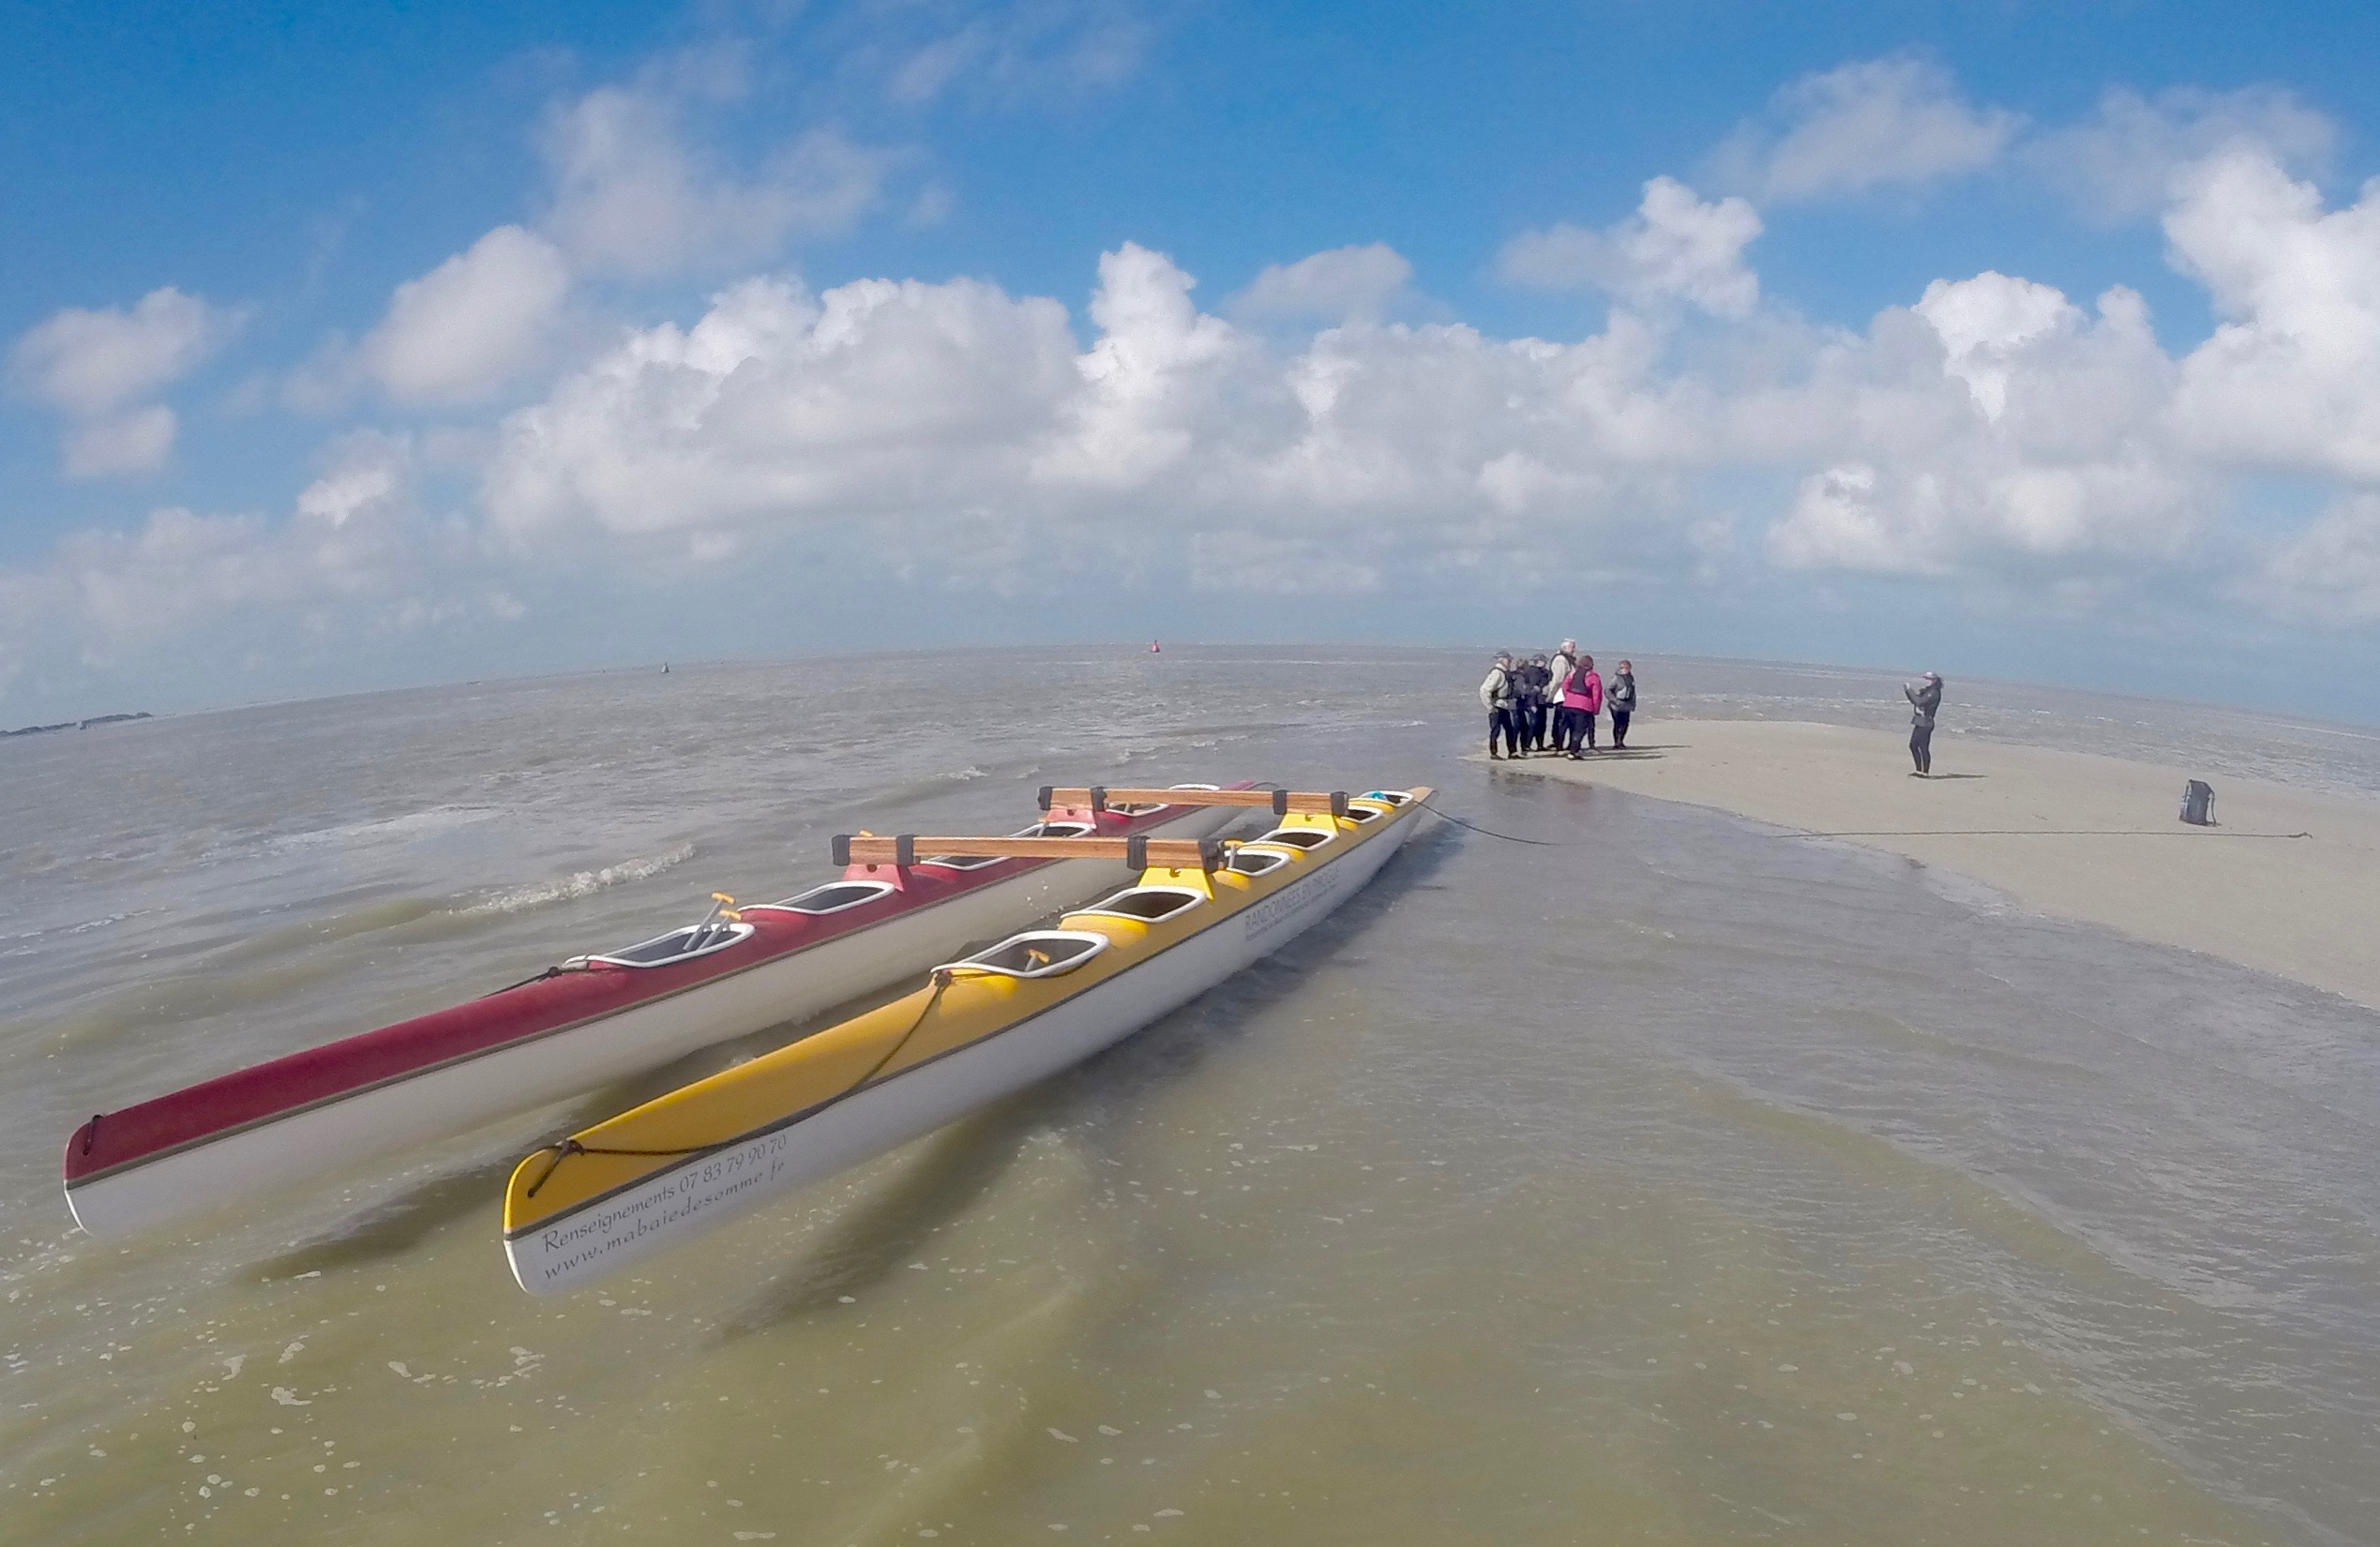 Les pirogues Mabaiedesomme au Crotoy